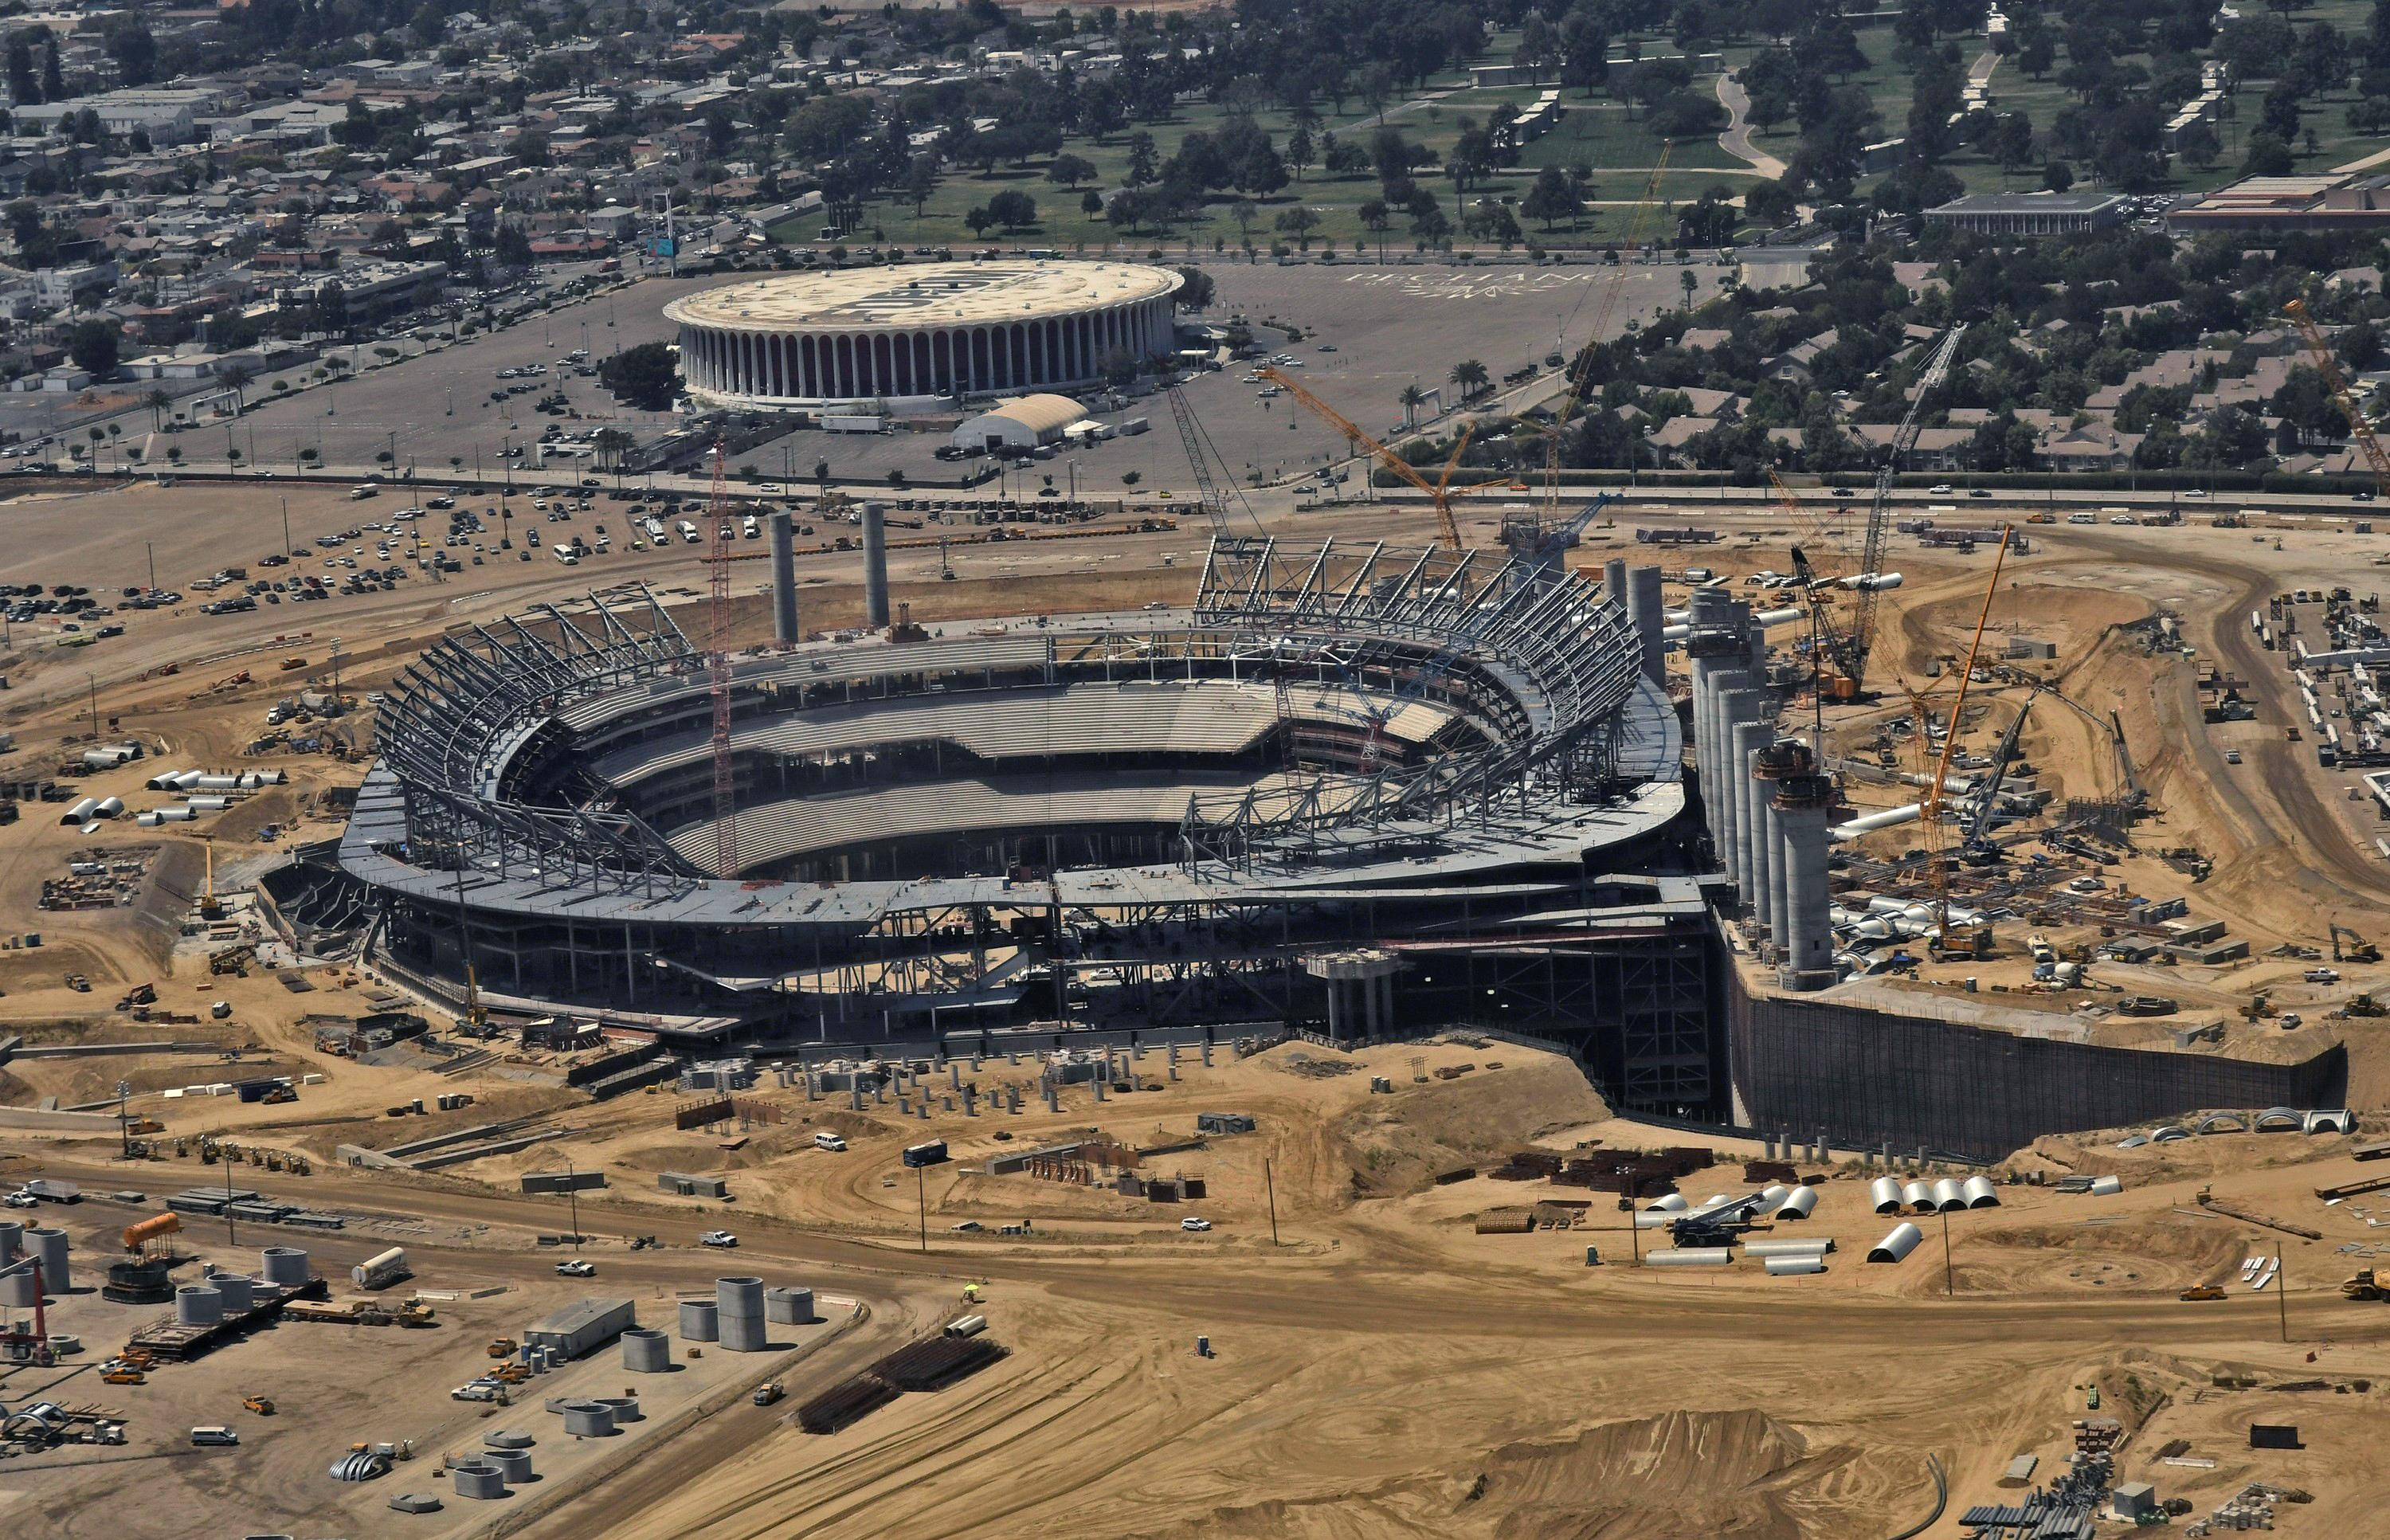 LA's new stadium will be ready for the 2020 NFL season to host both the Rams and Chargers